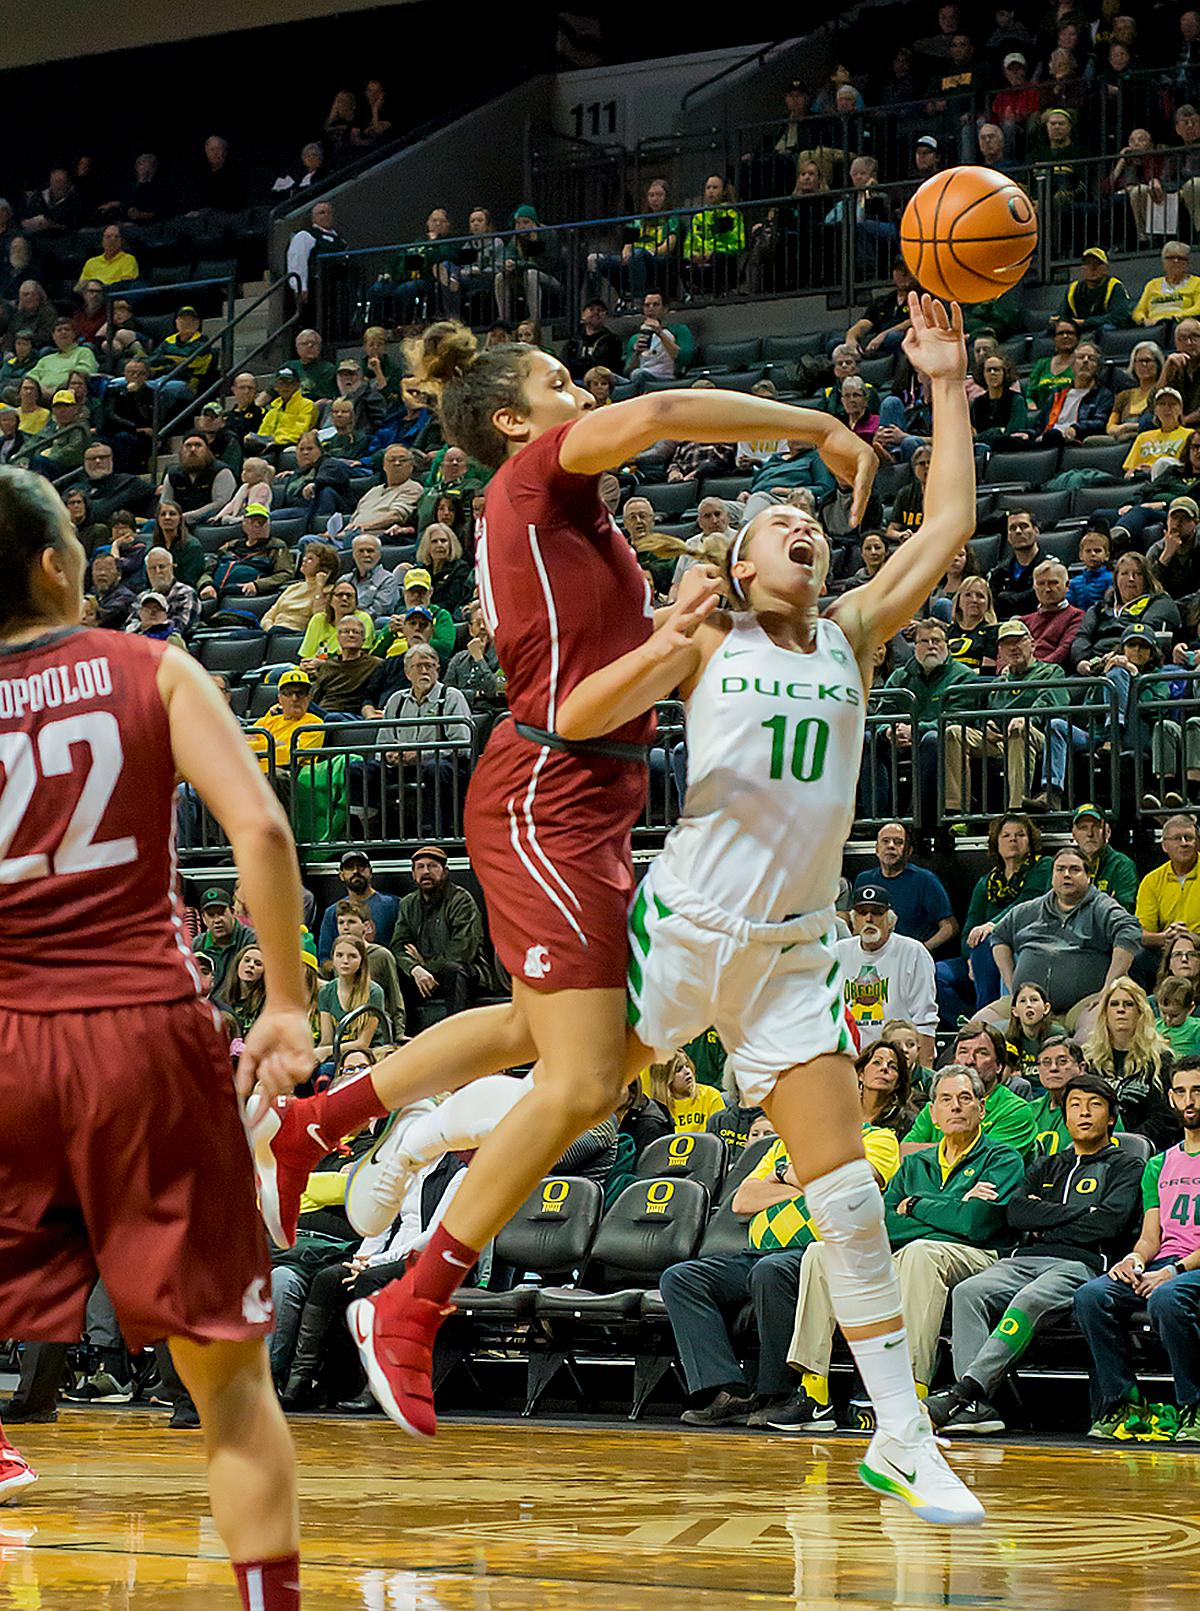 Washington State University Cougars Nike McClure (#21) blocks the shot of Oregon Ducks Lexi Bando (#10). In their first conference basketball game of the season, the Oregon Women Ducks defeated the Washington State Cougars 89-56 in Matt Knight Arena Saturday afternoon. Oregon's Ruthy Hebard ran up 25 points with 10 rebounds. Sabrina Ionescu shot 25 points with five three-pointers and three rebounds. Lexi Bando added 18 points, with four three-pointers and pulled down three rebounds. Satou Sabally ended the game with 14 points with one three-pointer and two rebounds. The Ducks are now 12-2 overall with 1-0 in conference and the Cougars stand at 7-6 overall and 0-1 in conference play. The Oregon Women Ducks next play the University of Washington Huskies at 1:00 pm on Sunday. Photo by Karly DeWees, Oregon News Lab